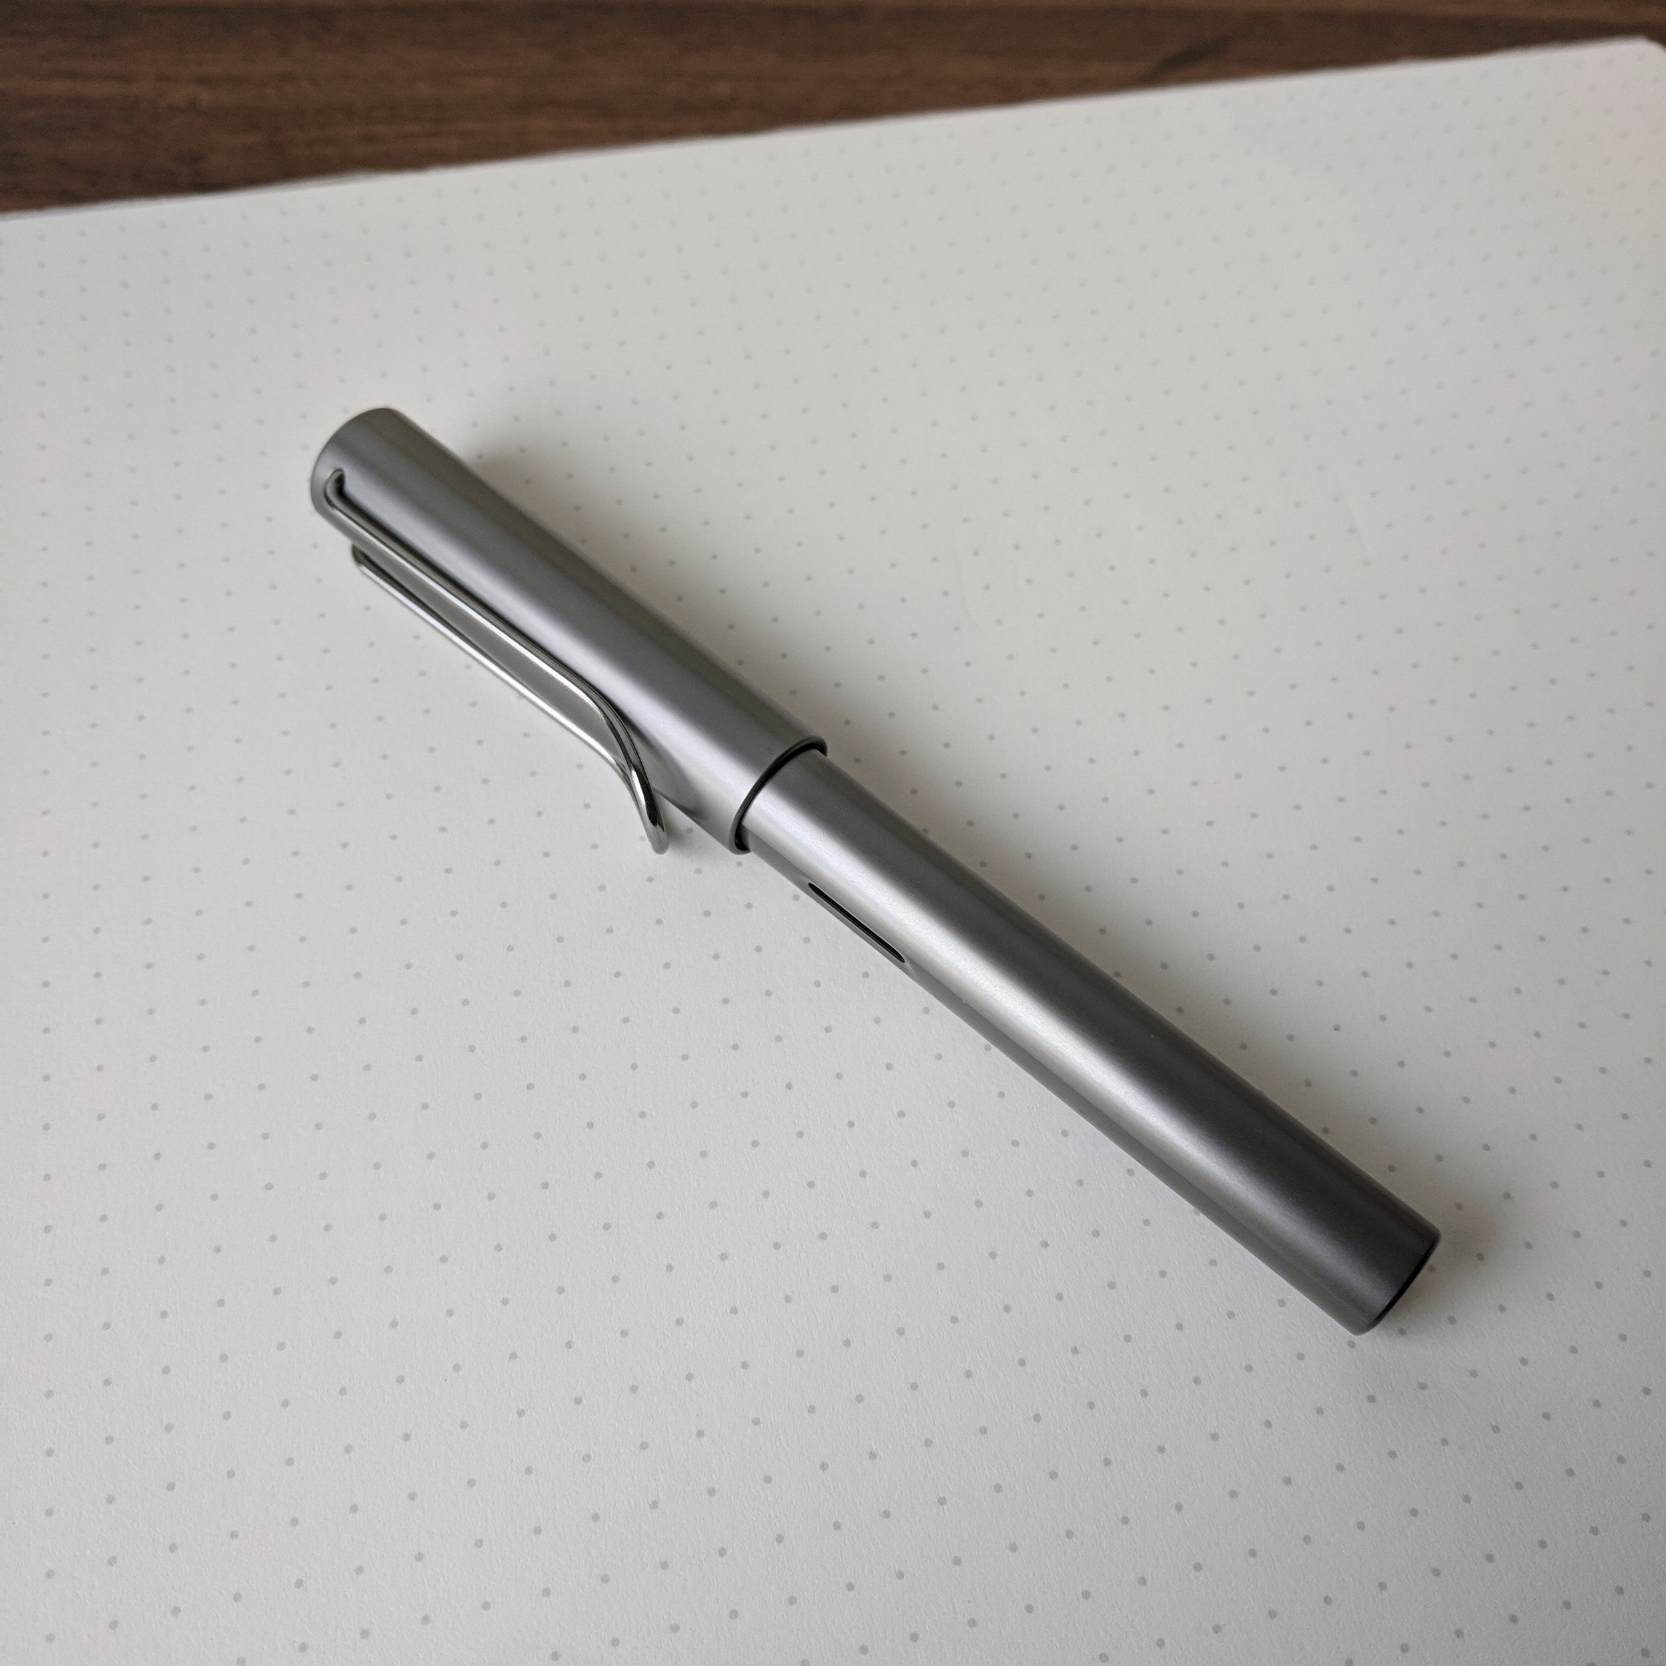 Lamy-LX-Fountain-Pen